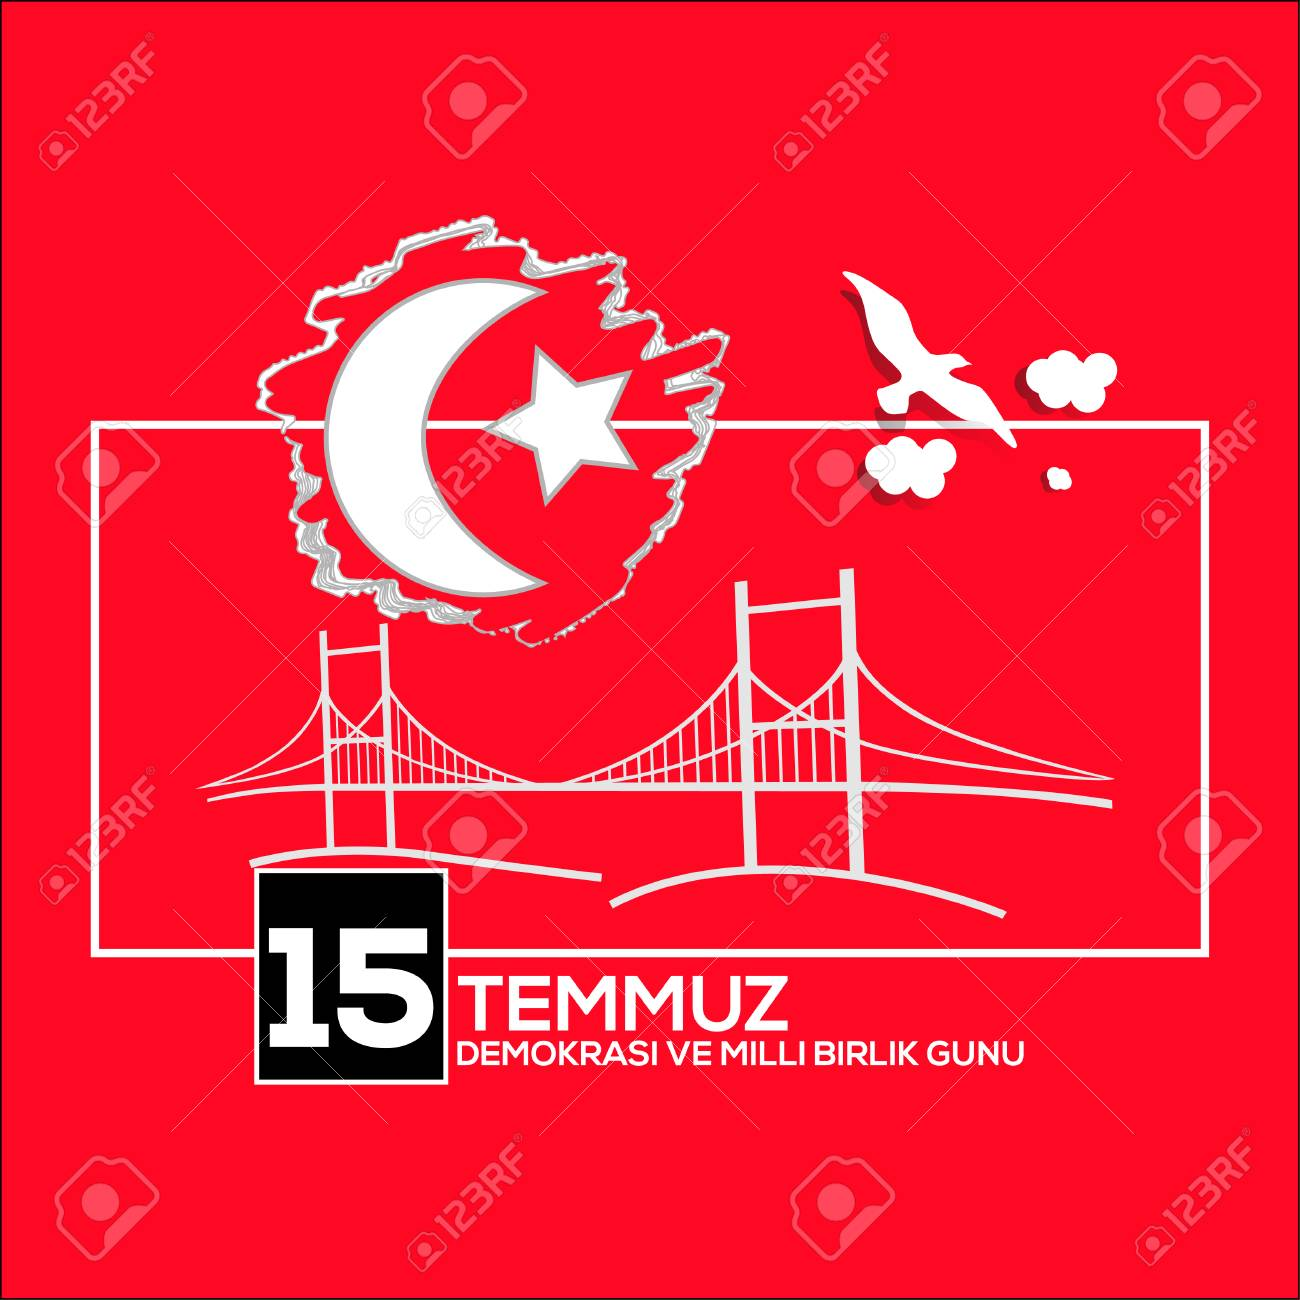 Vector Illustration 15 Temmuz Demokrasi Ve Milli Birlik Gunu